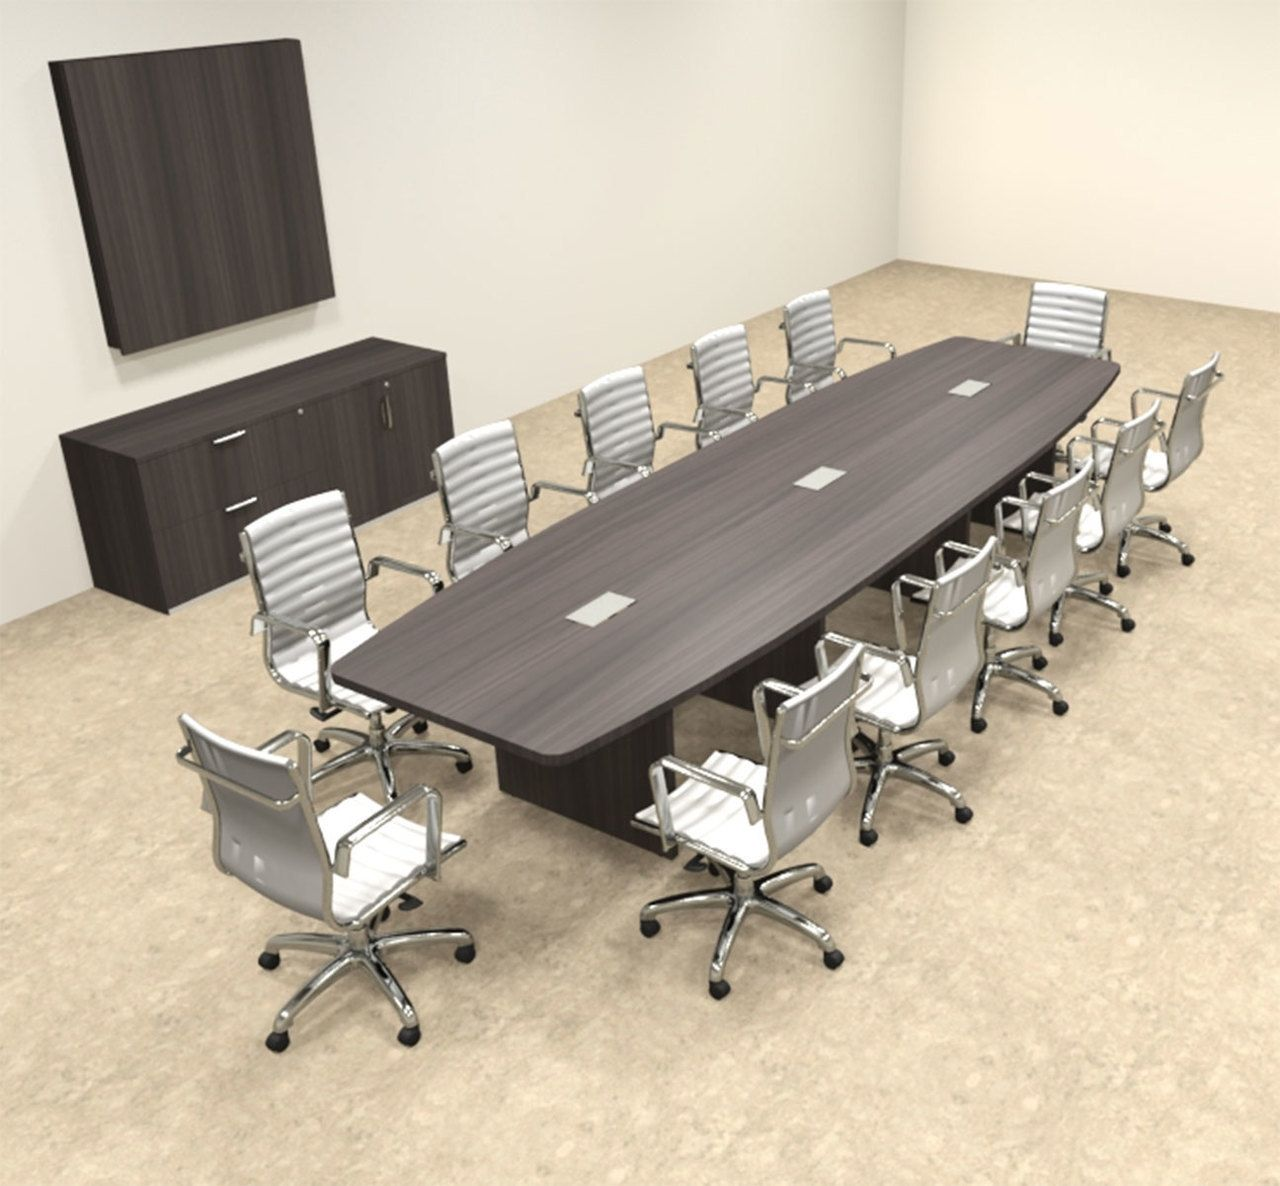 Modern Boat Shapedd 14 Feet Conference Table Of Con C135 Conference Table Modern Conference Table Office Table Design